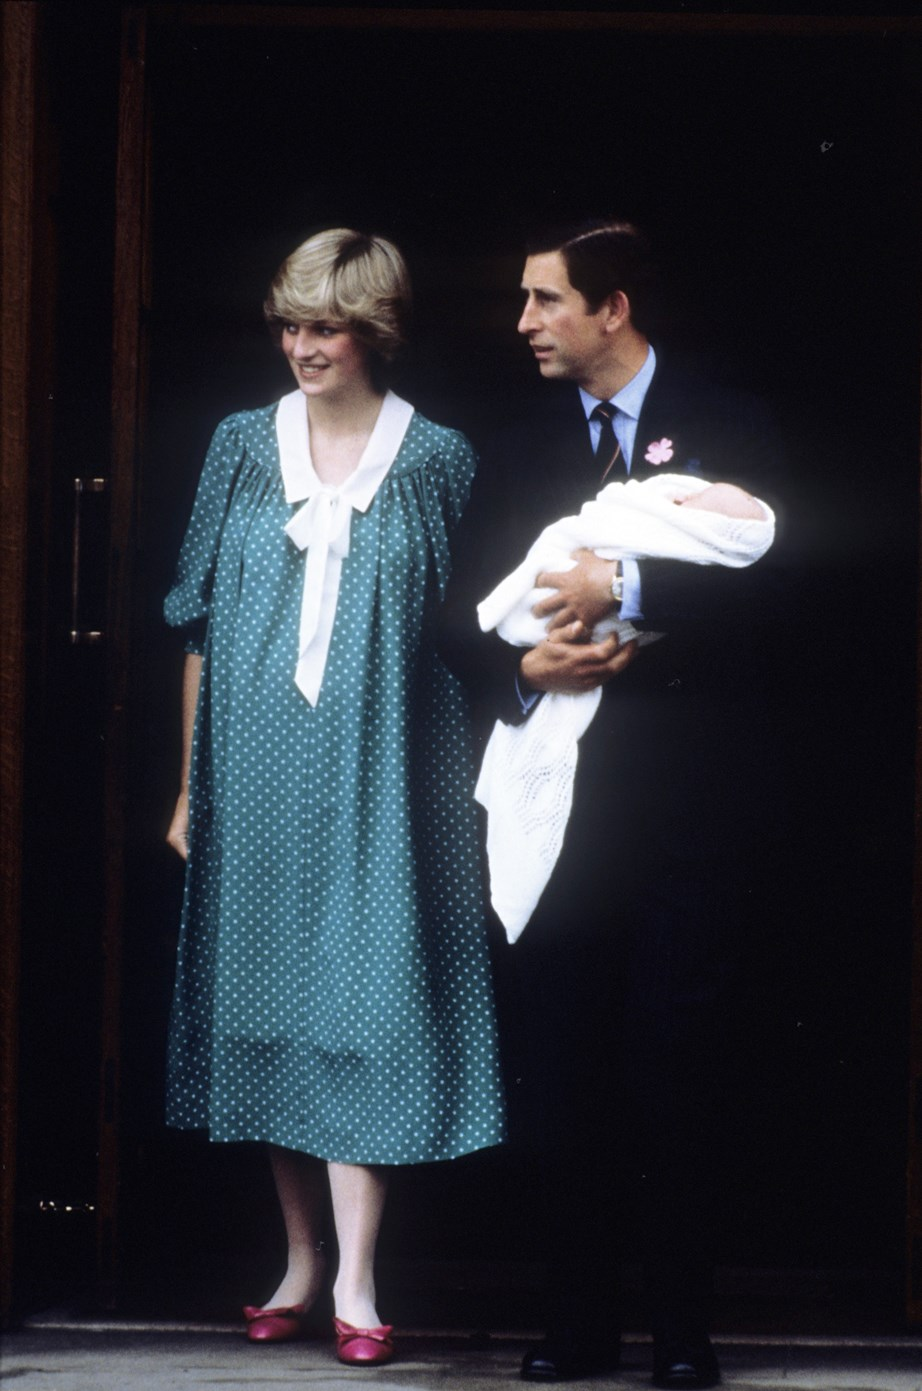 A newborn Prince William leaves Lindo Wing at St Mary's Hospital with his mother and father, the Prince and Princess of Wales. <br><br> *(Image: Getty)*